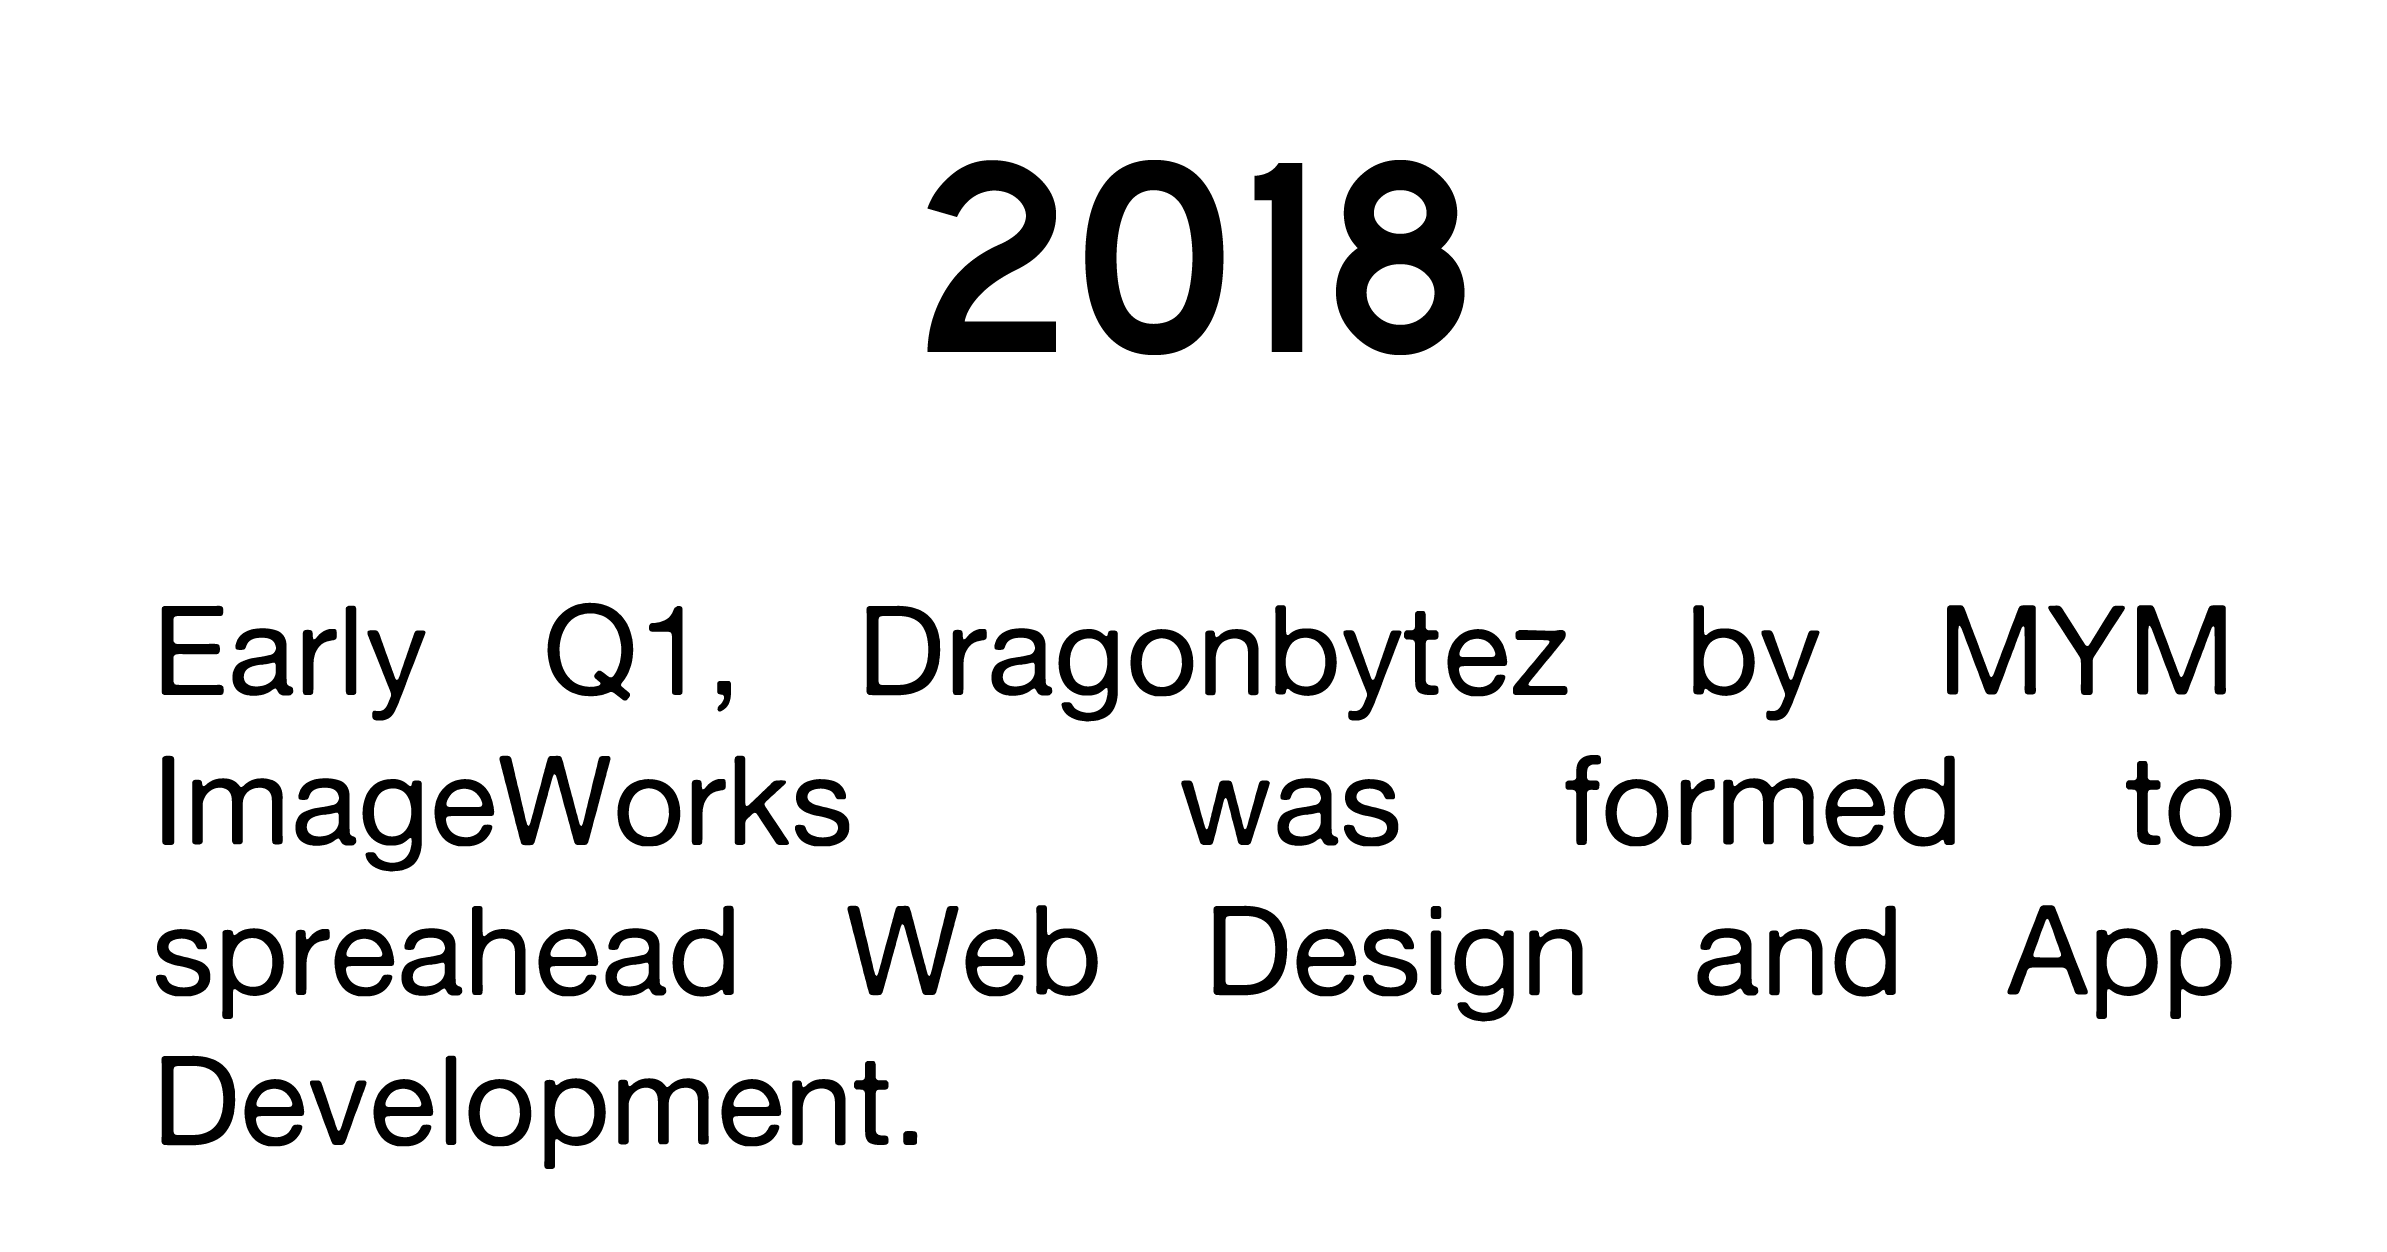 Dragonbytez-text 2018